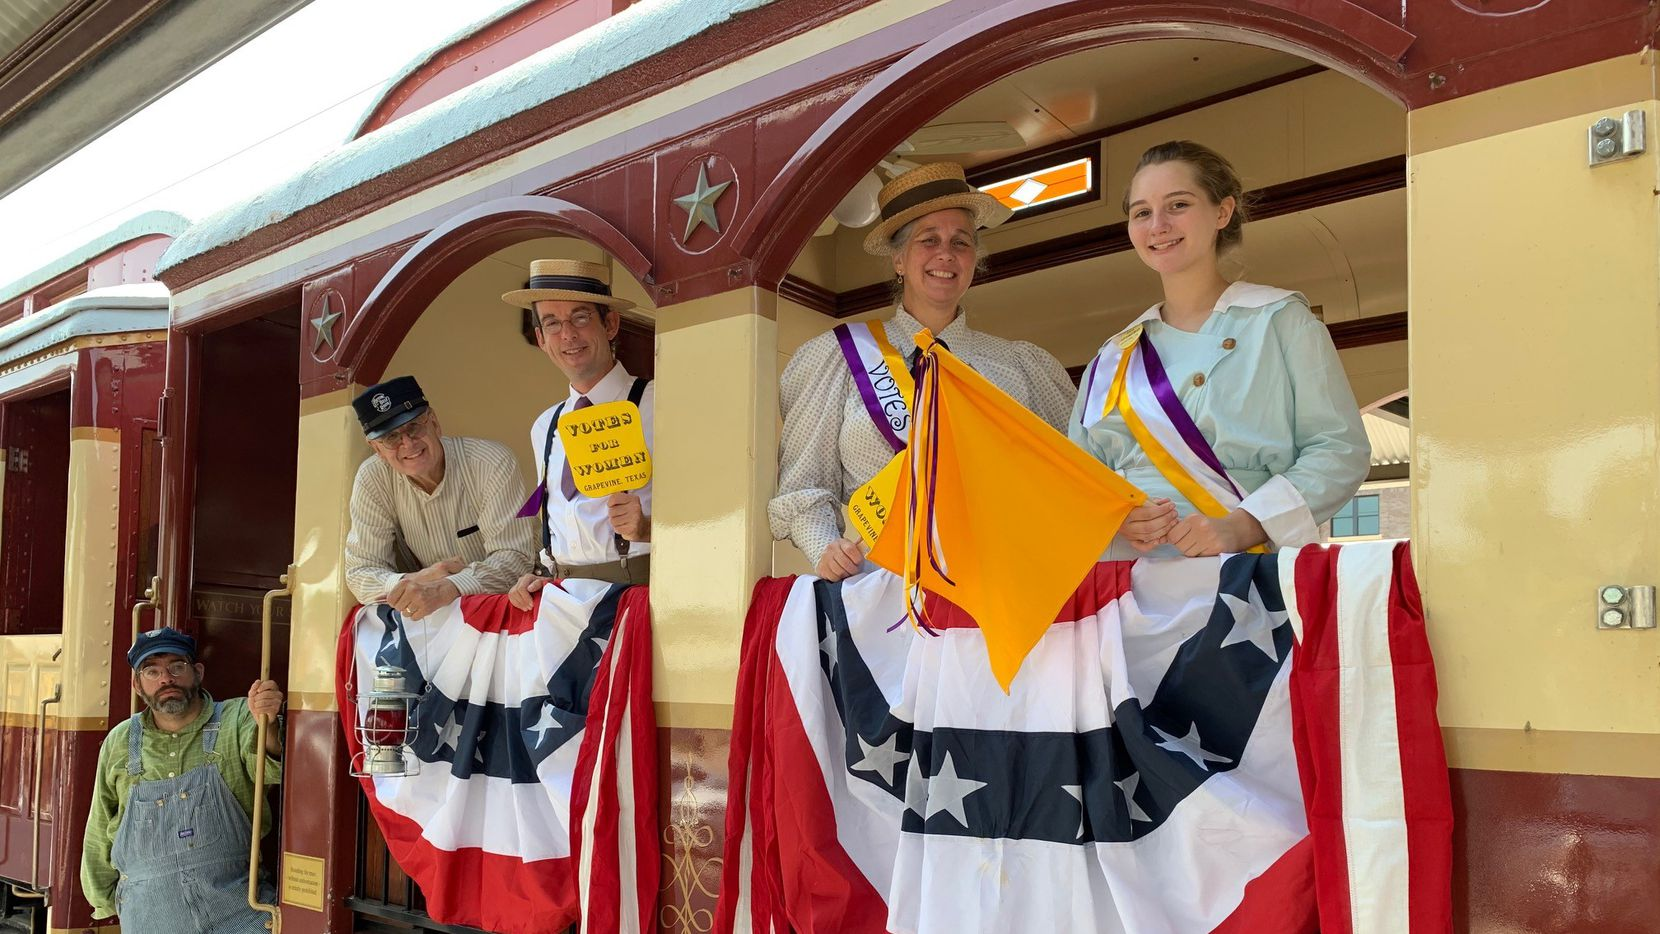 People in 1920s-themed attire will speak about the women's suffrage movement during train excursions on the Grapevine Vintage Railroad.